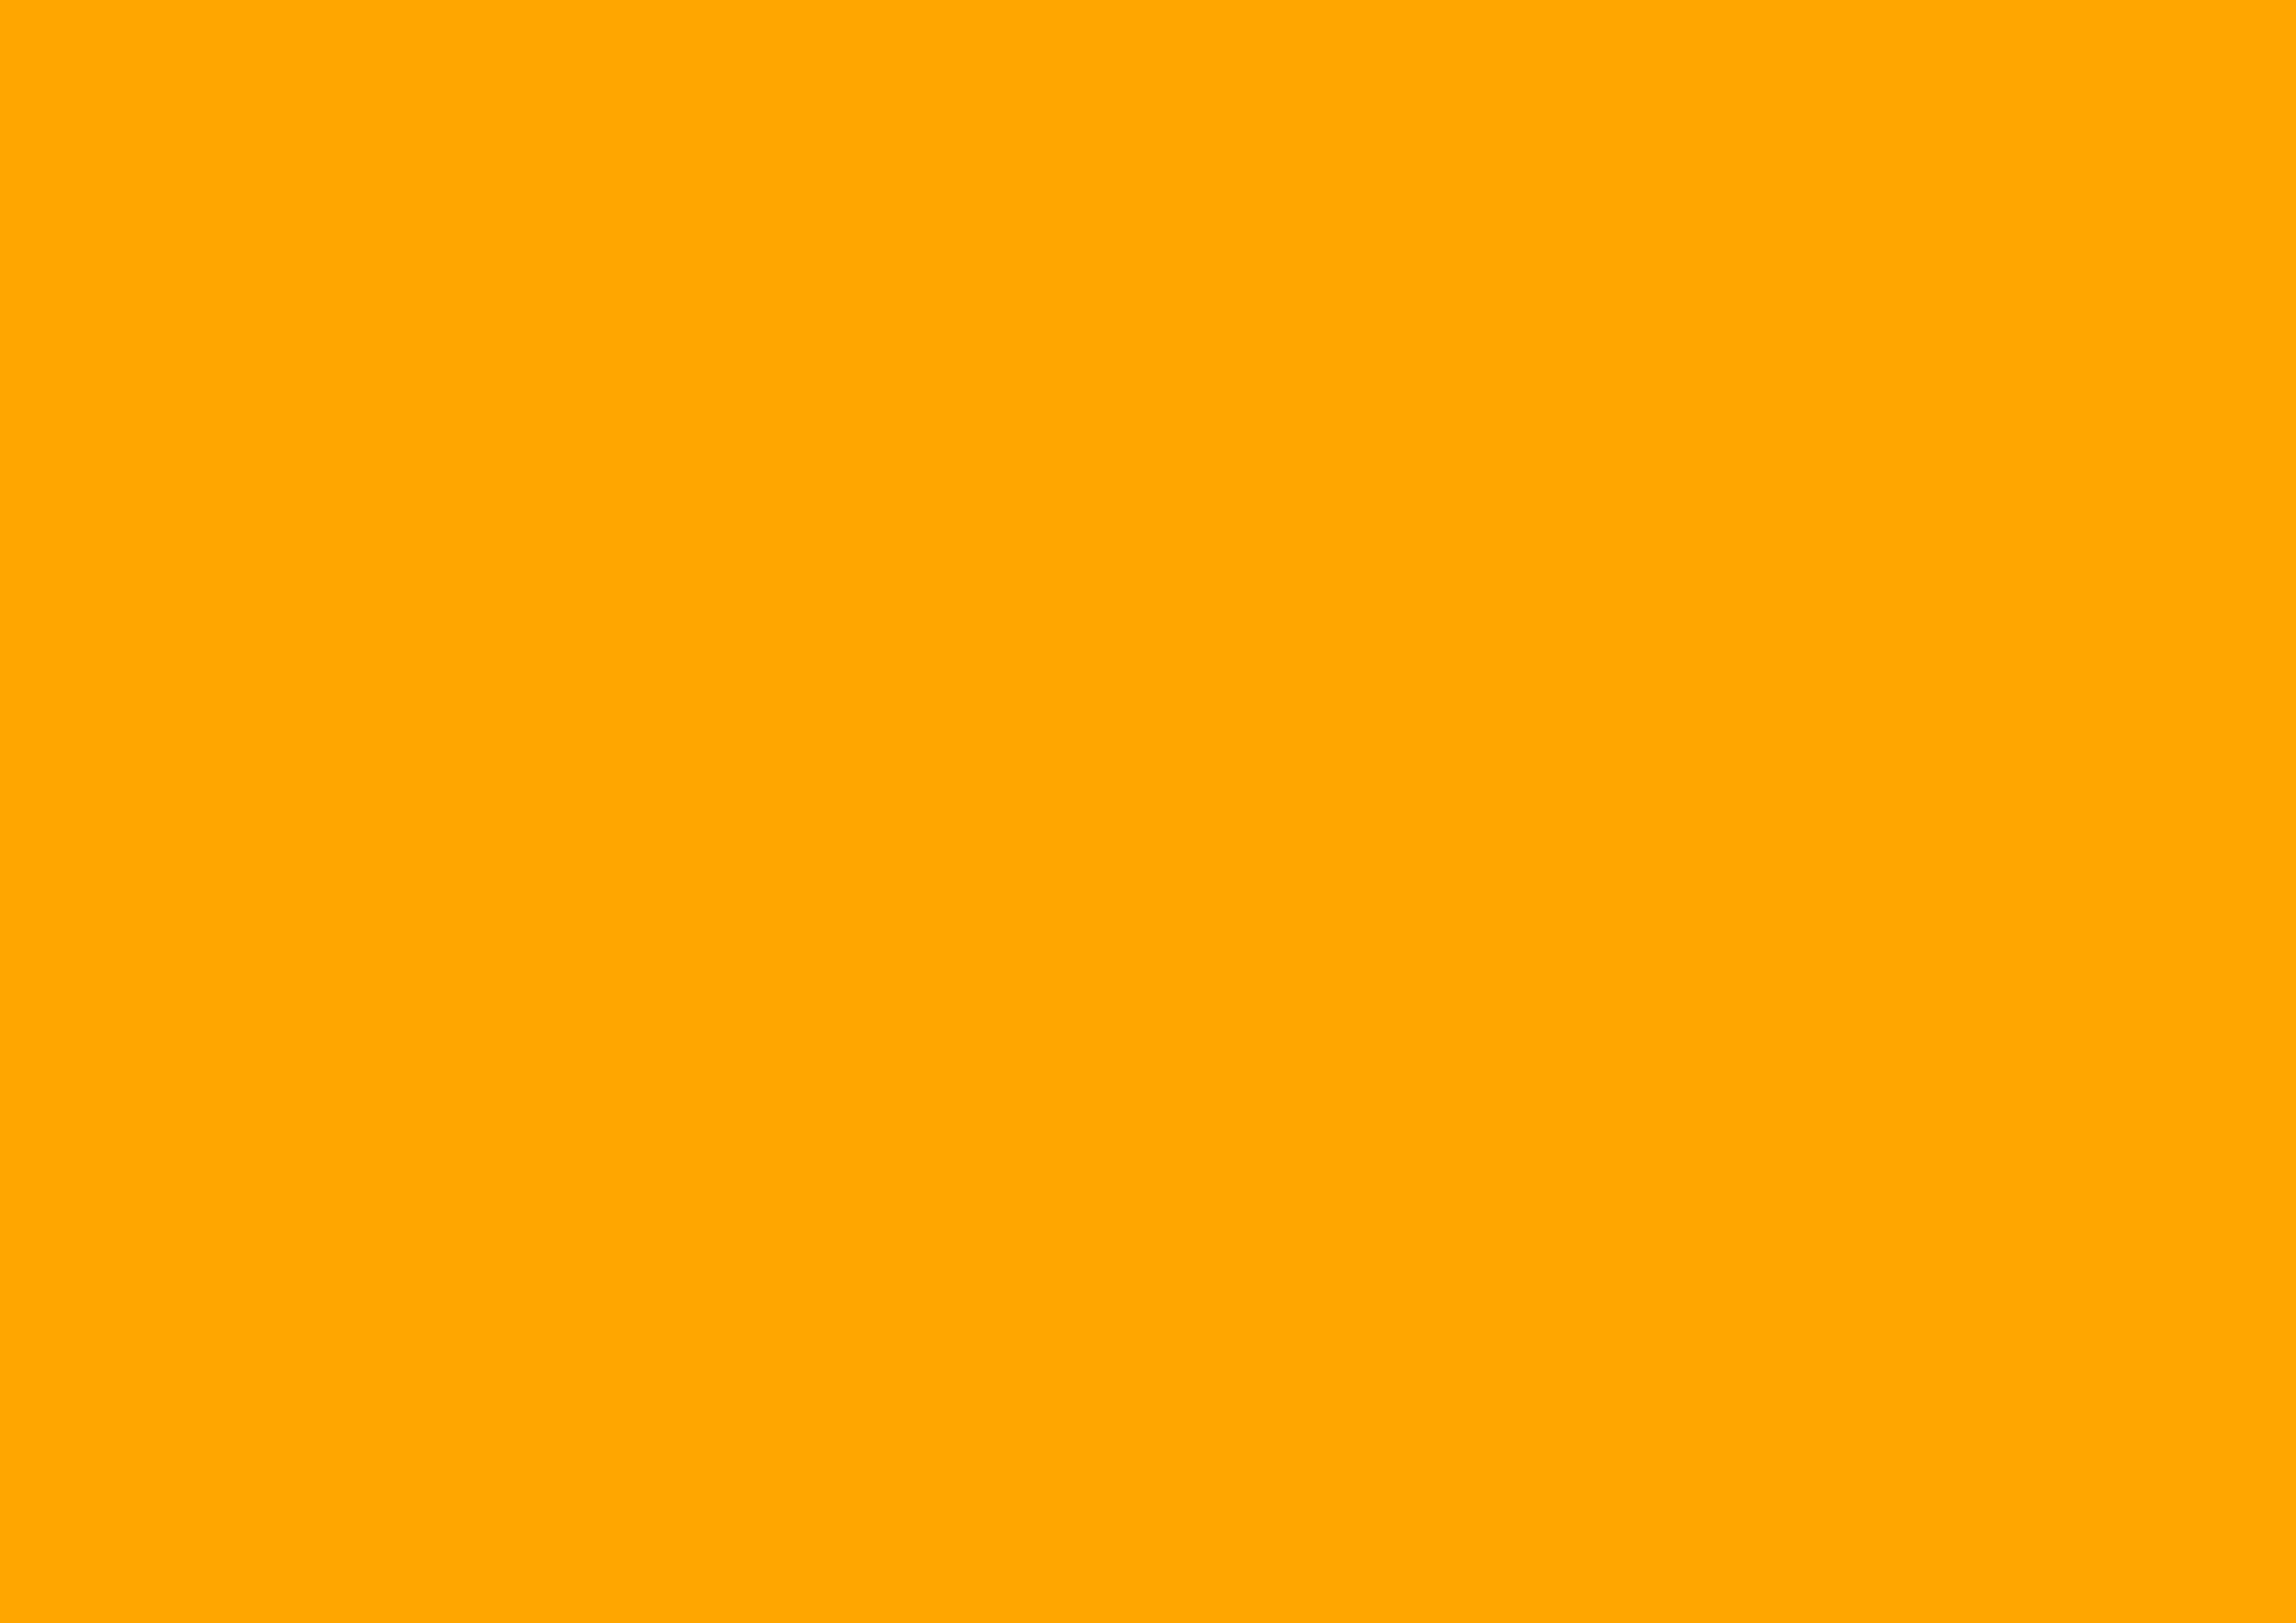 3508x2480 Chrome Yellow Solid Color Background